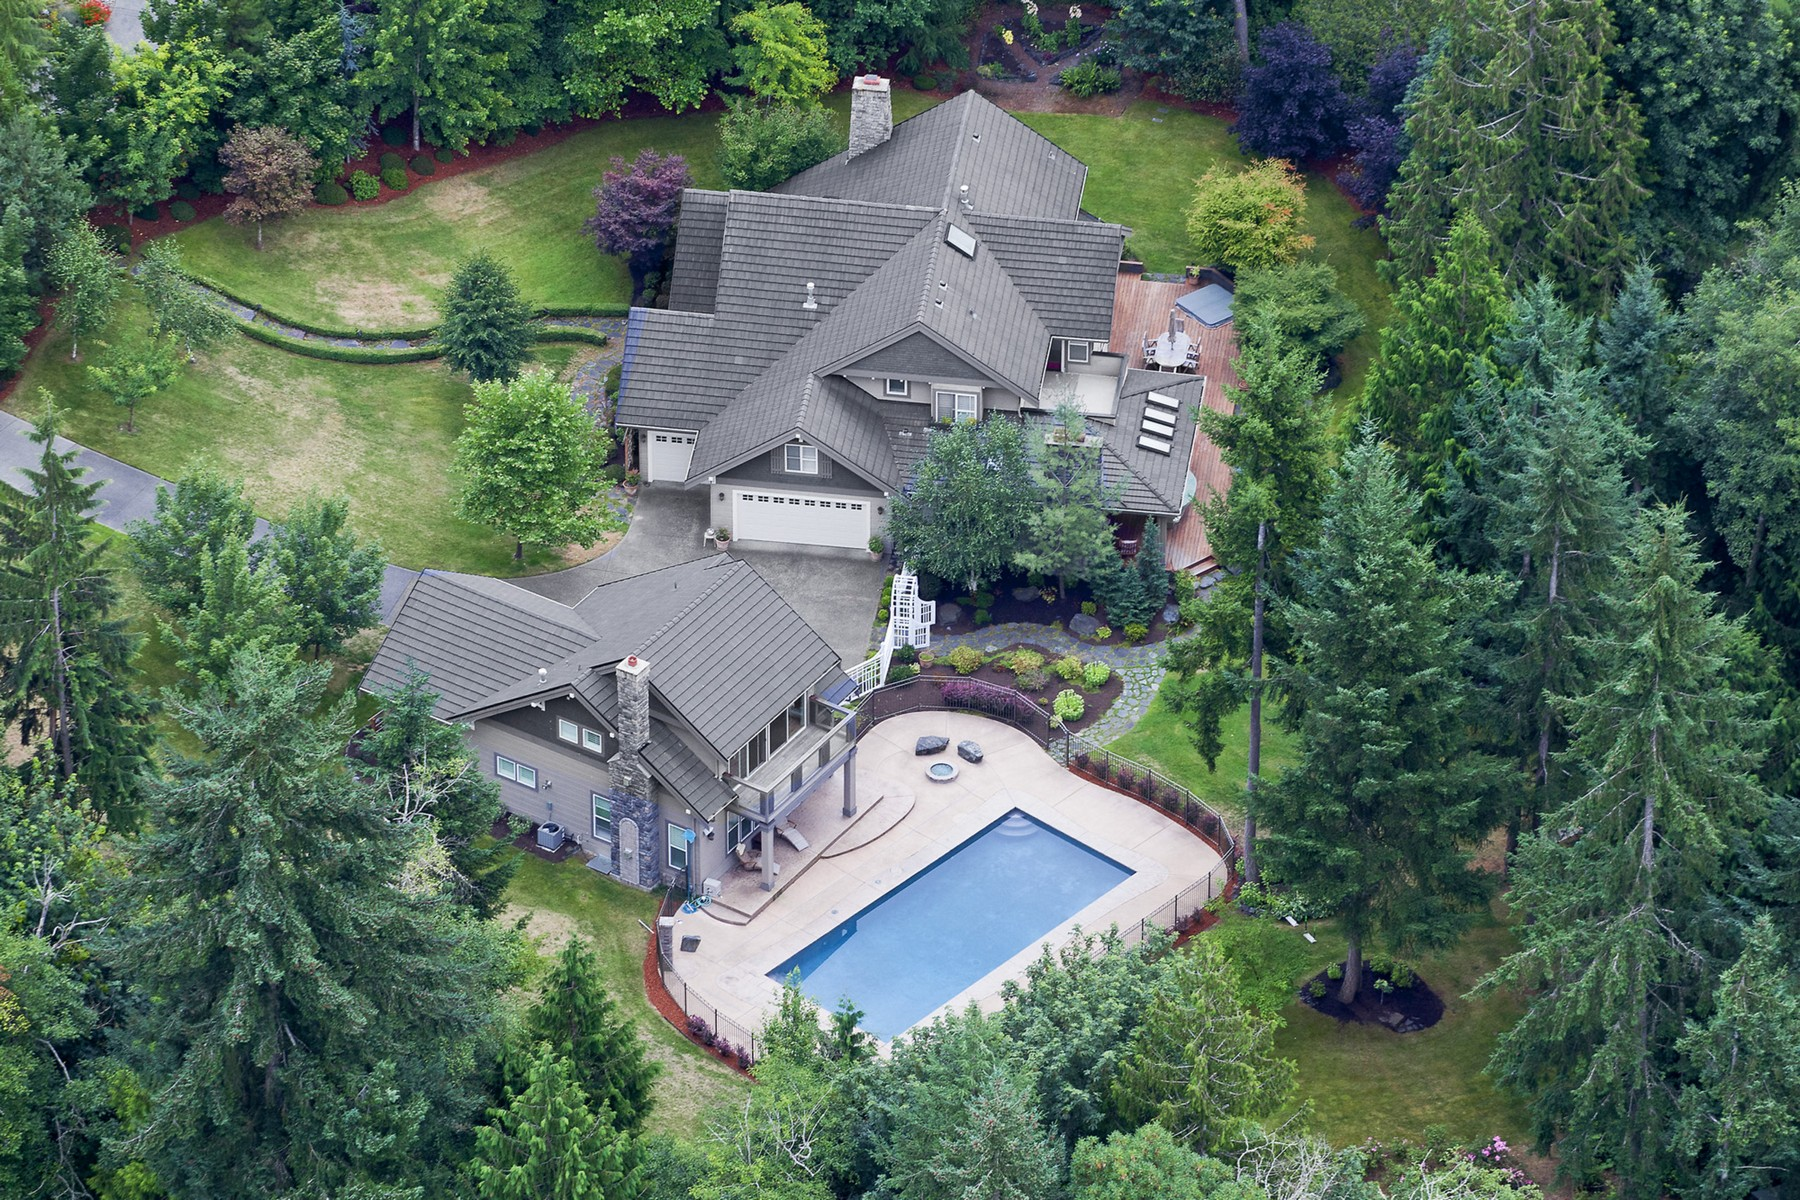 Single Family Home for Sale at Stunning Canterwood Estate on 2.5 Acres 13318 Bracken Fern Drive NW Gig Harbor, Washington 98332 United States